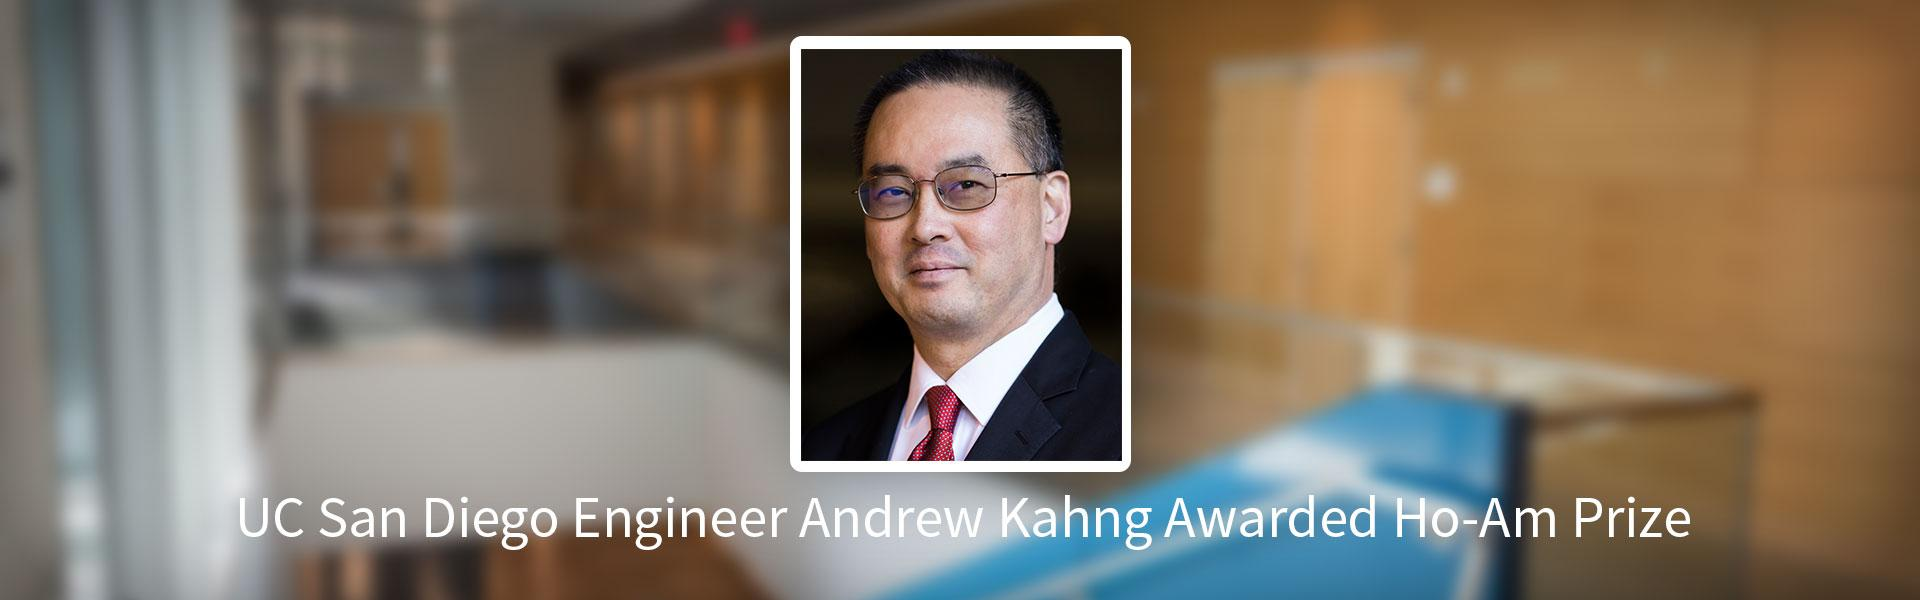 Andrew Kahng Awarded